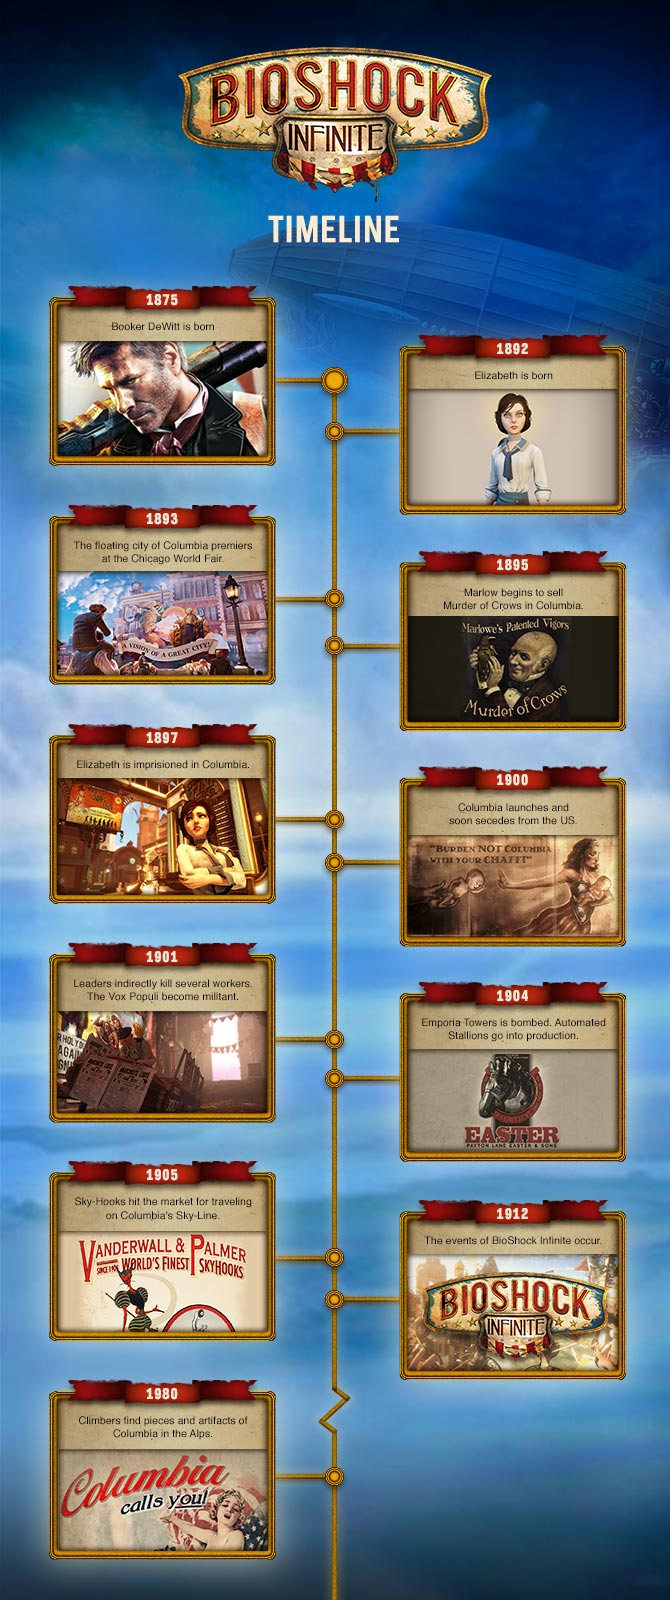 Bioshock Infinite Timeline